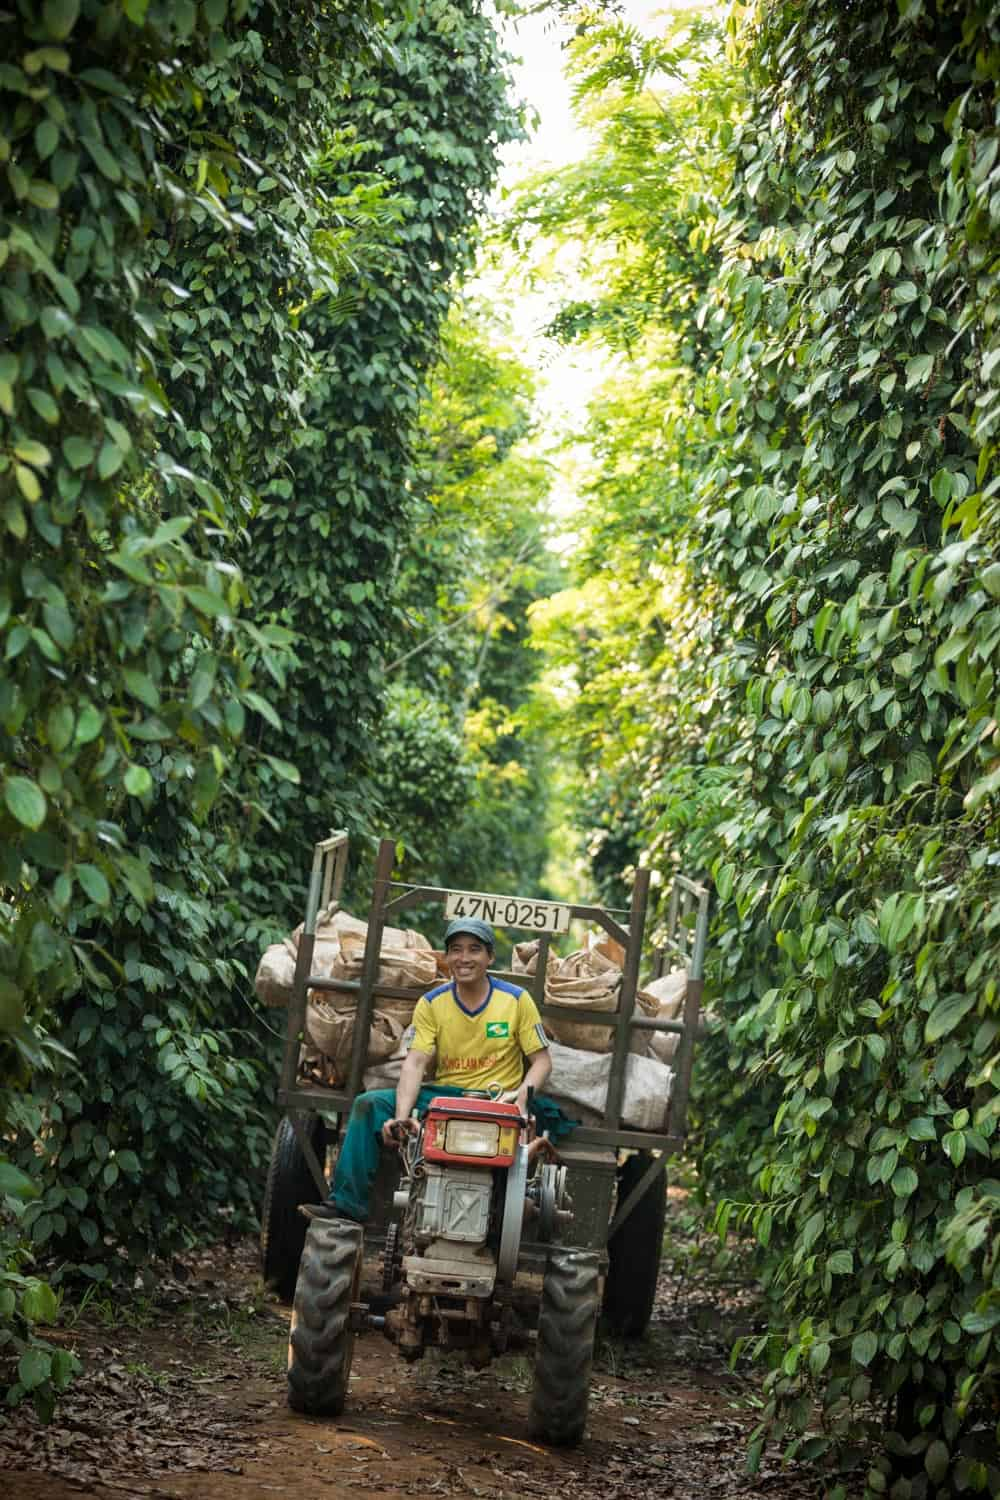 CABI Vietnam SE Asia Binh Dang Agriculture Documentary Photography Photographer Hanoi Danang HoChiminh Corporate Editorial Commerce 11